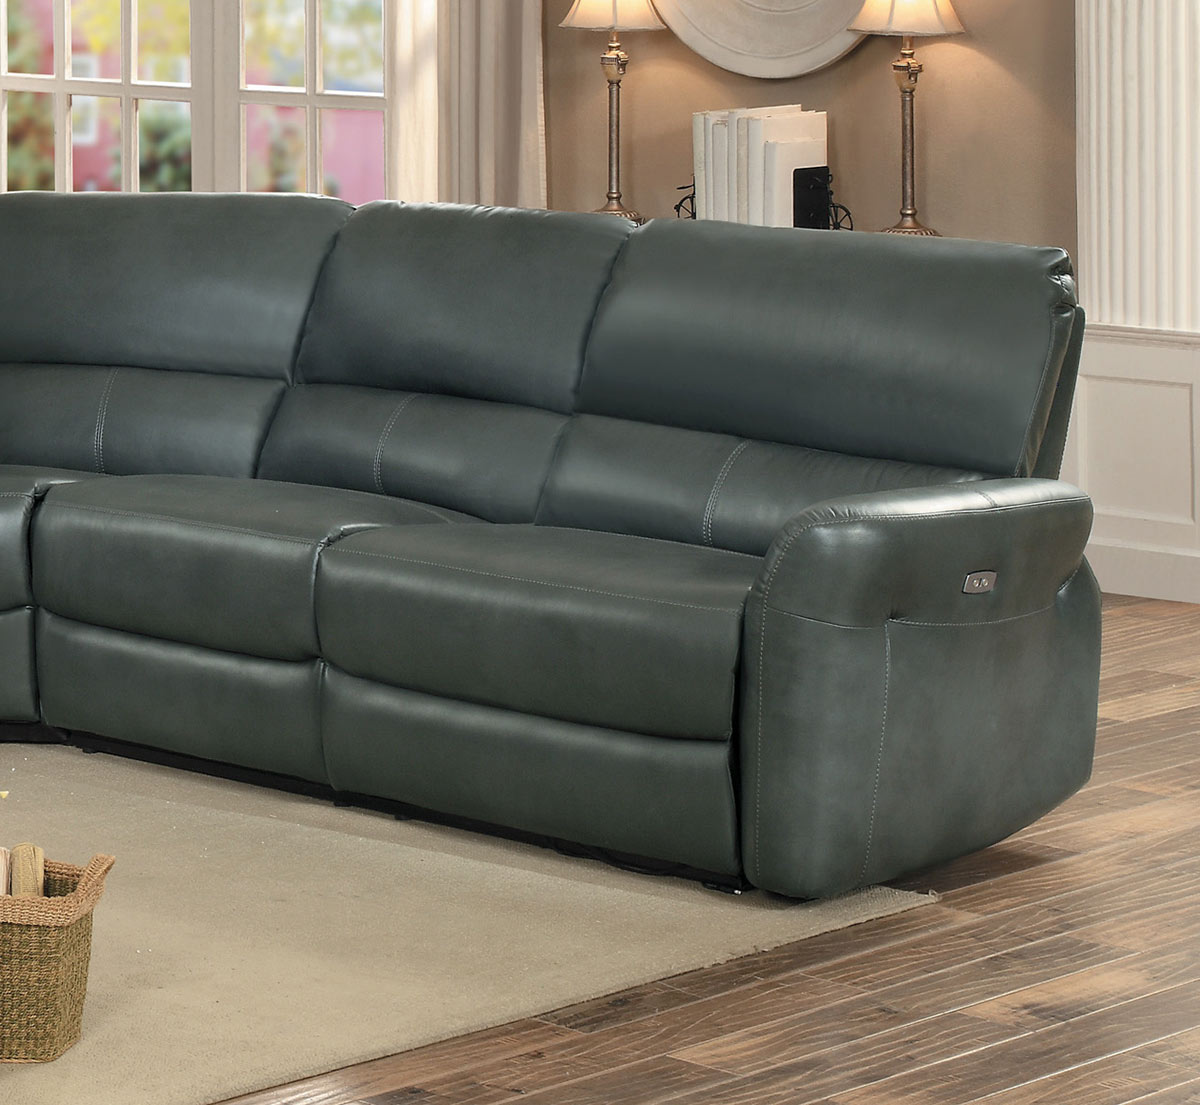 Homelegance Kismet Power Right Side Facing Reclining Love Seat - Gray AireHyde Match